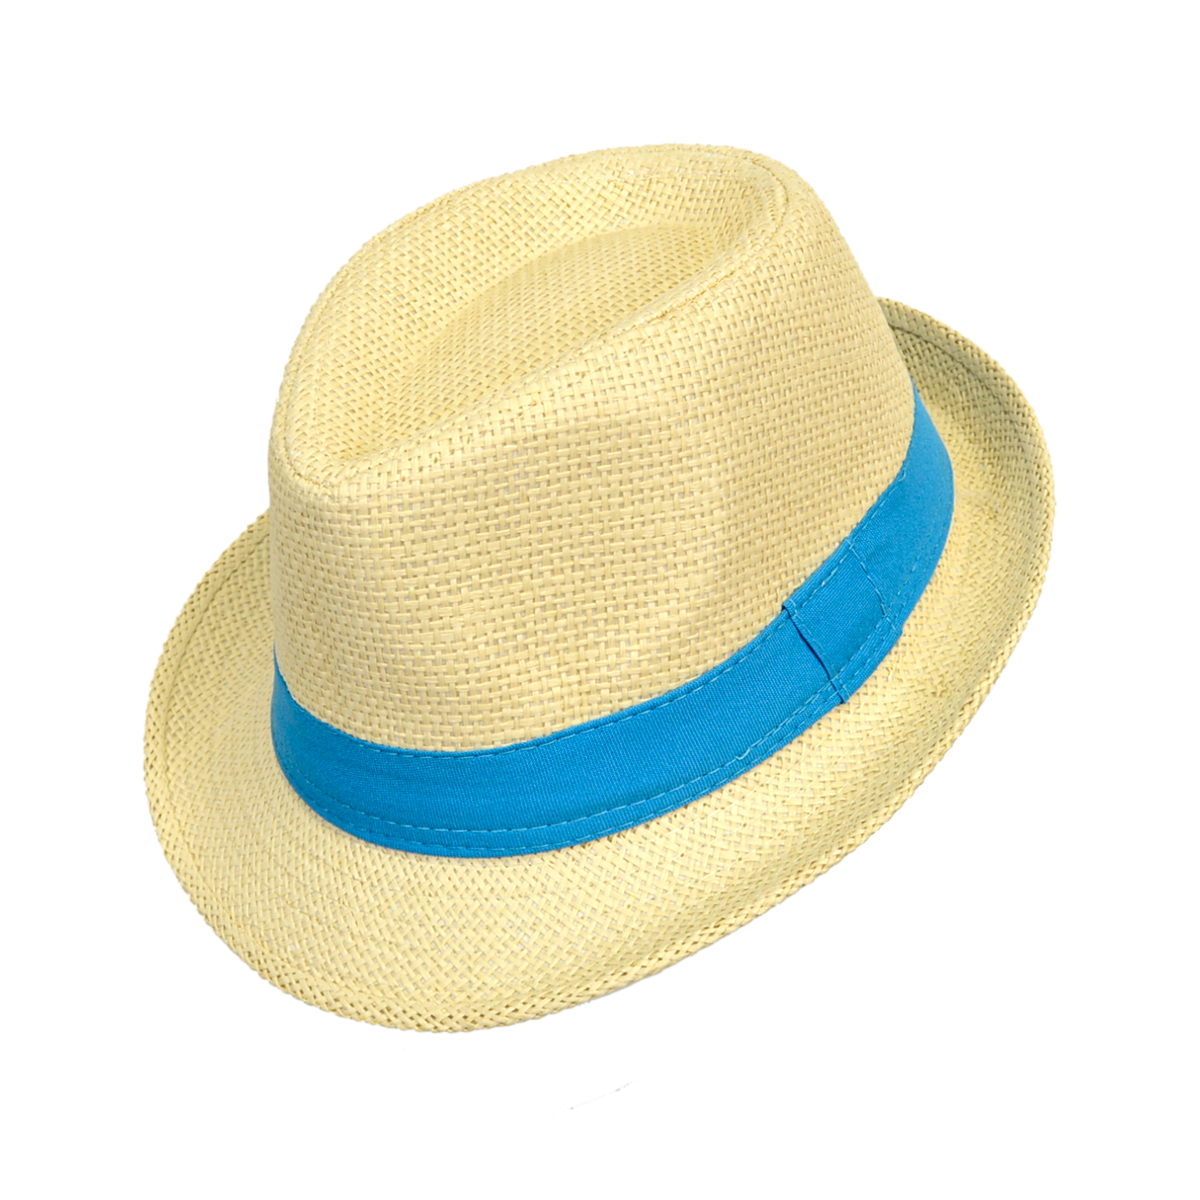 6pc Boy s Spring Summer Light Tan Straw Fedora Hats with Blue Band a8851c07e2bb